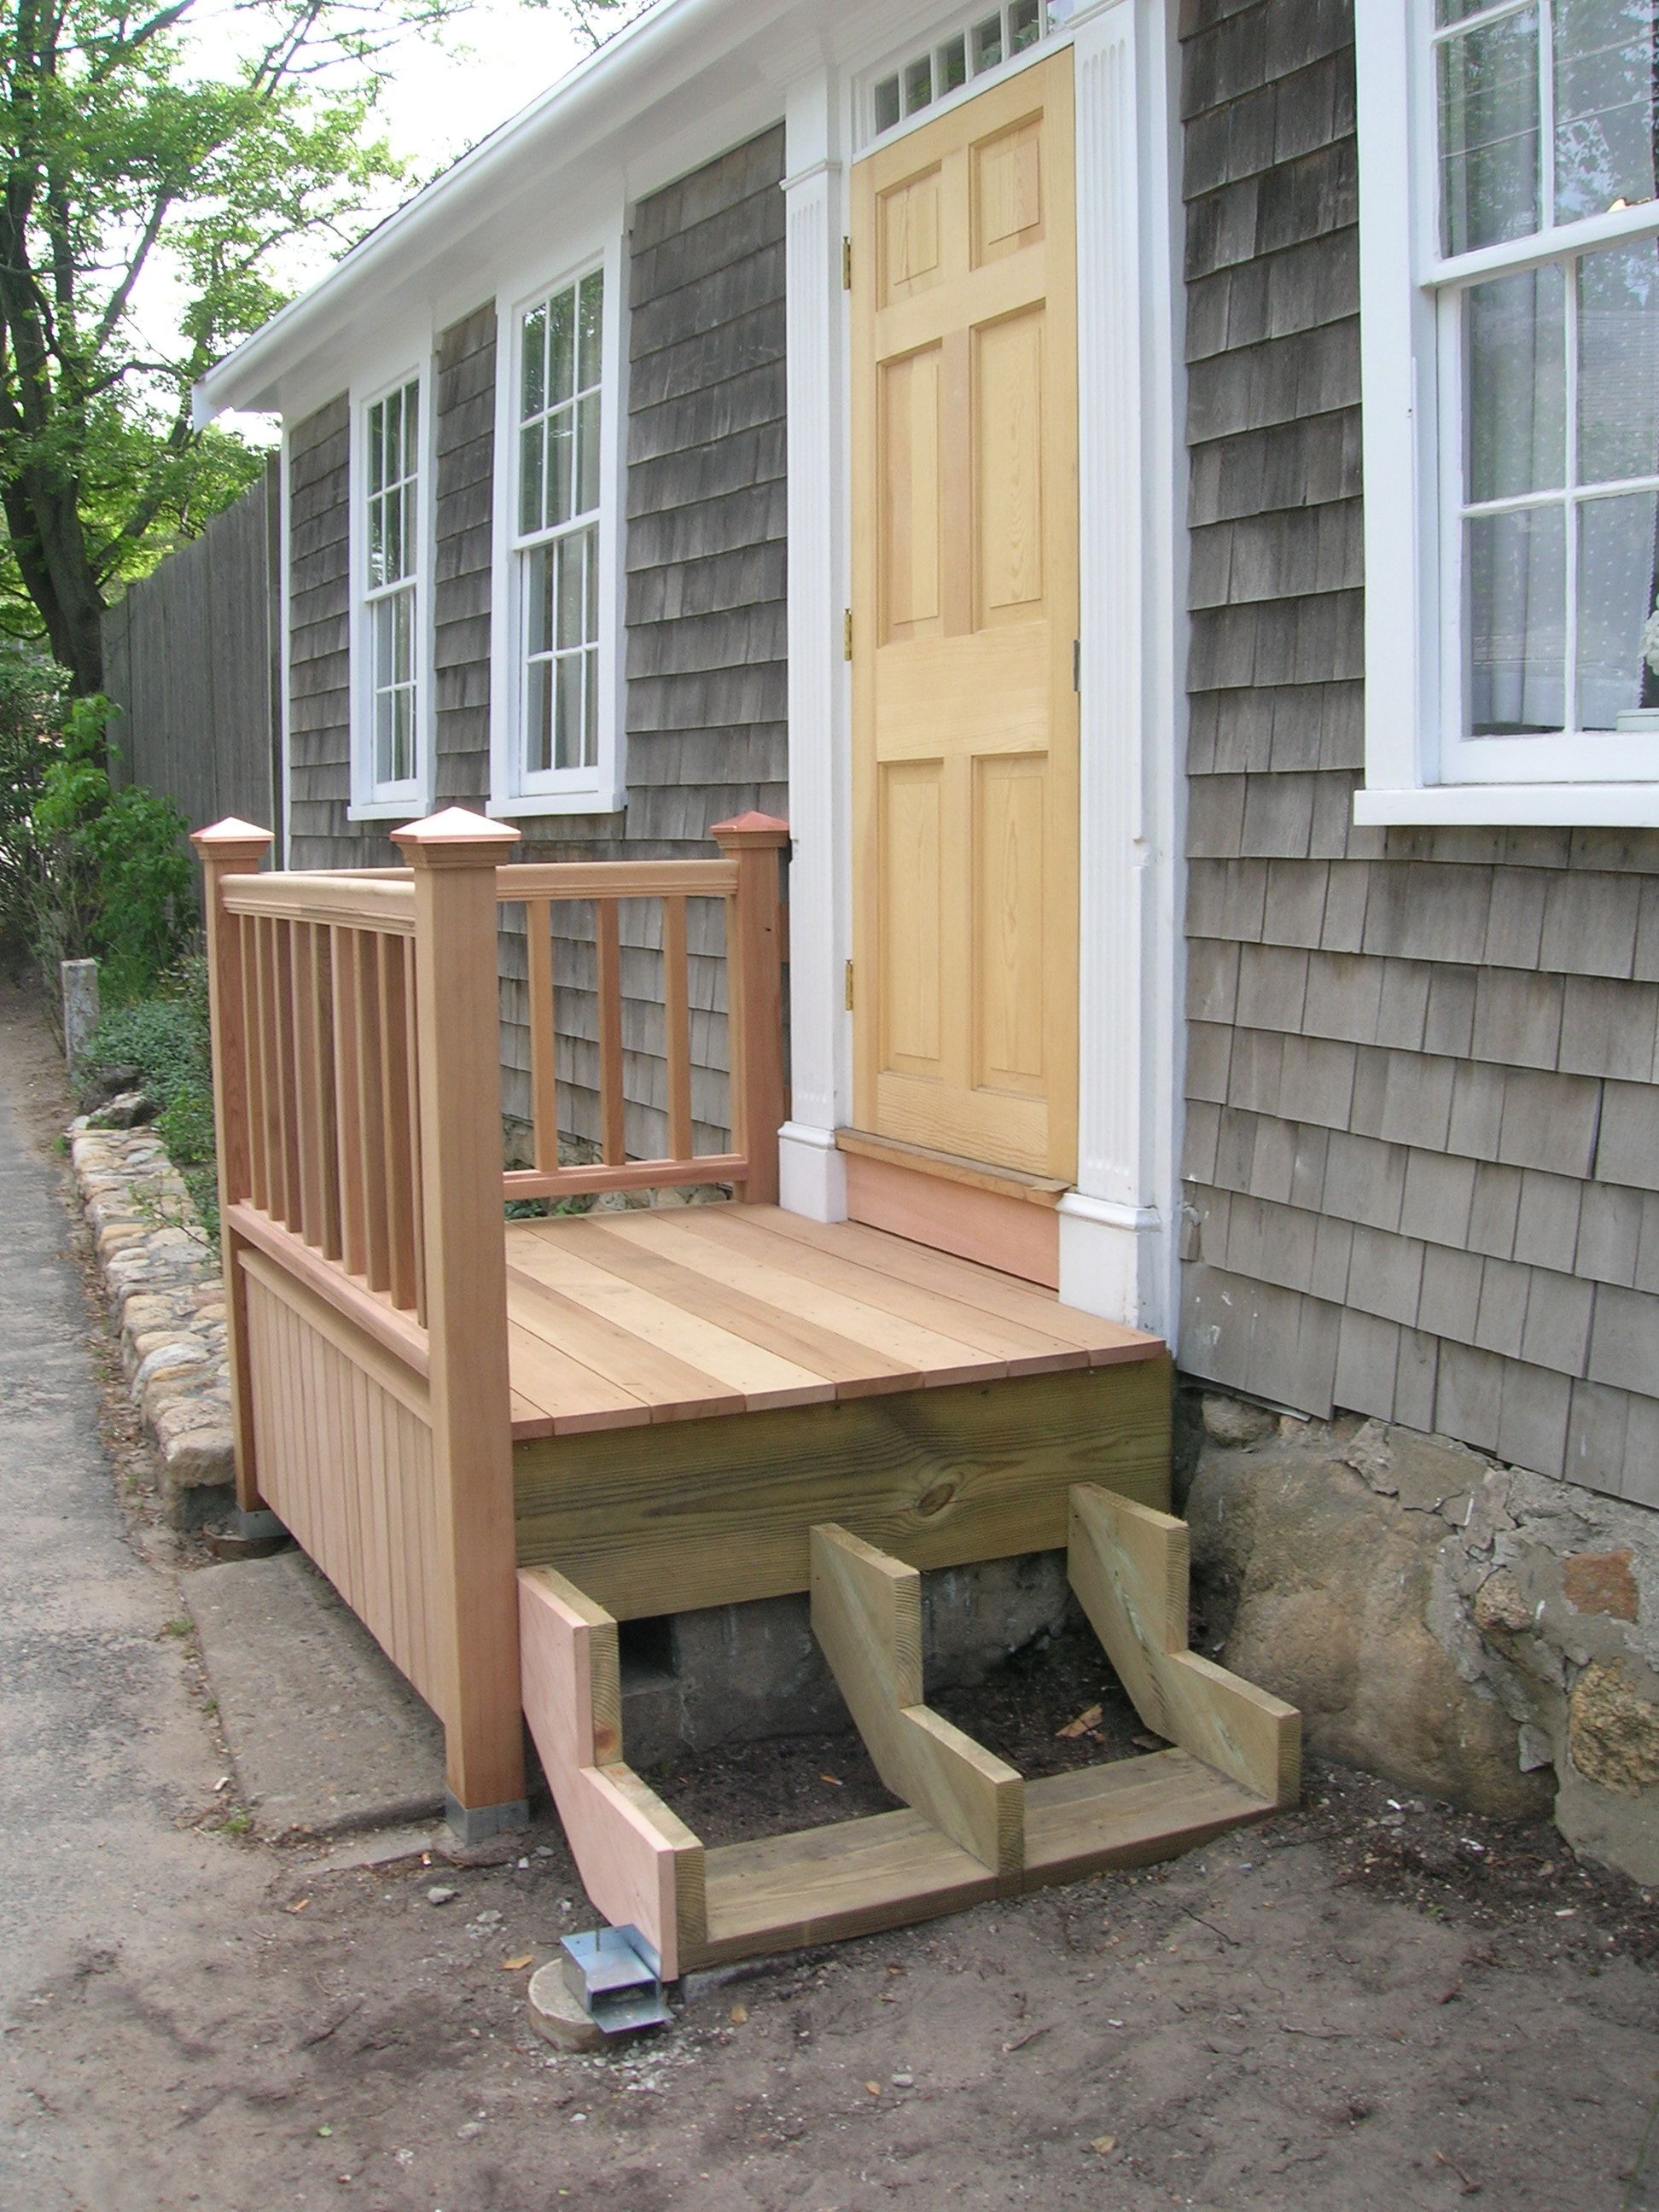 Small Front Porches Designs Front Porch Steps Porch Design: Front Porch Steps, Porch Steps, Porch Design